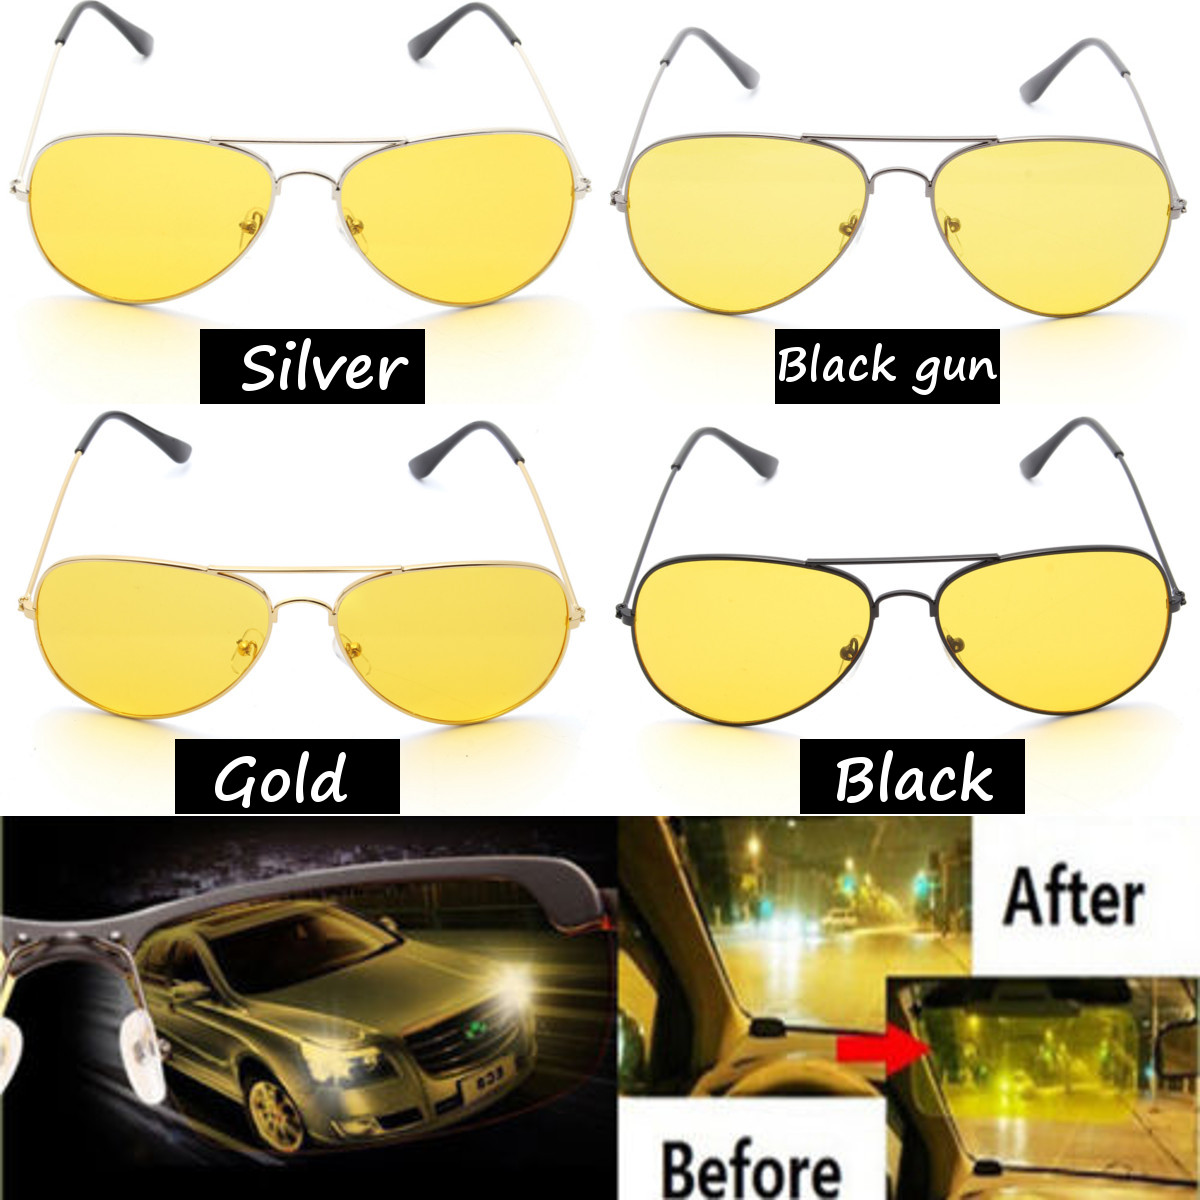 Outdoor Night Driving Glasses Anti Glare Vision Driver Safety Sunglasses